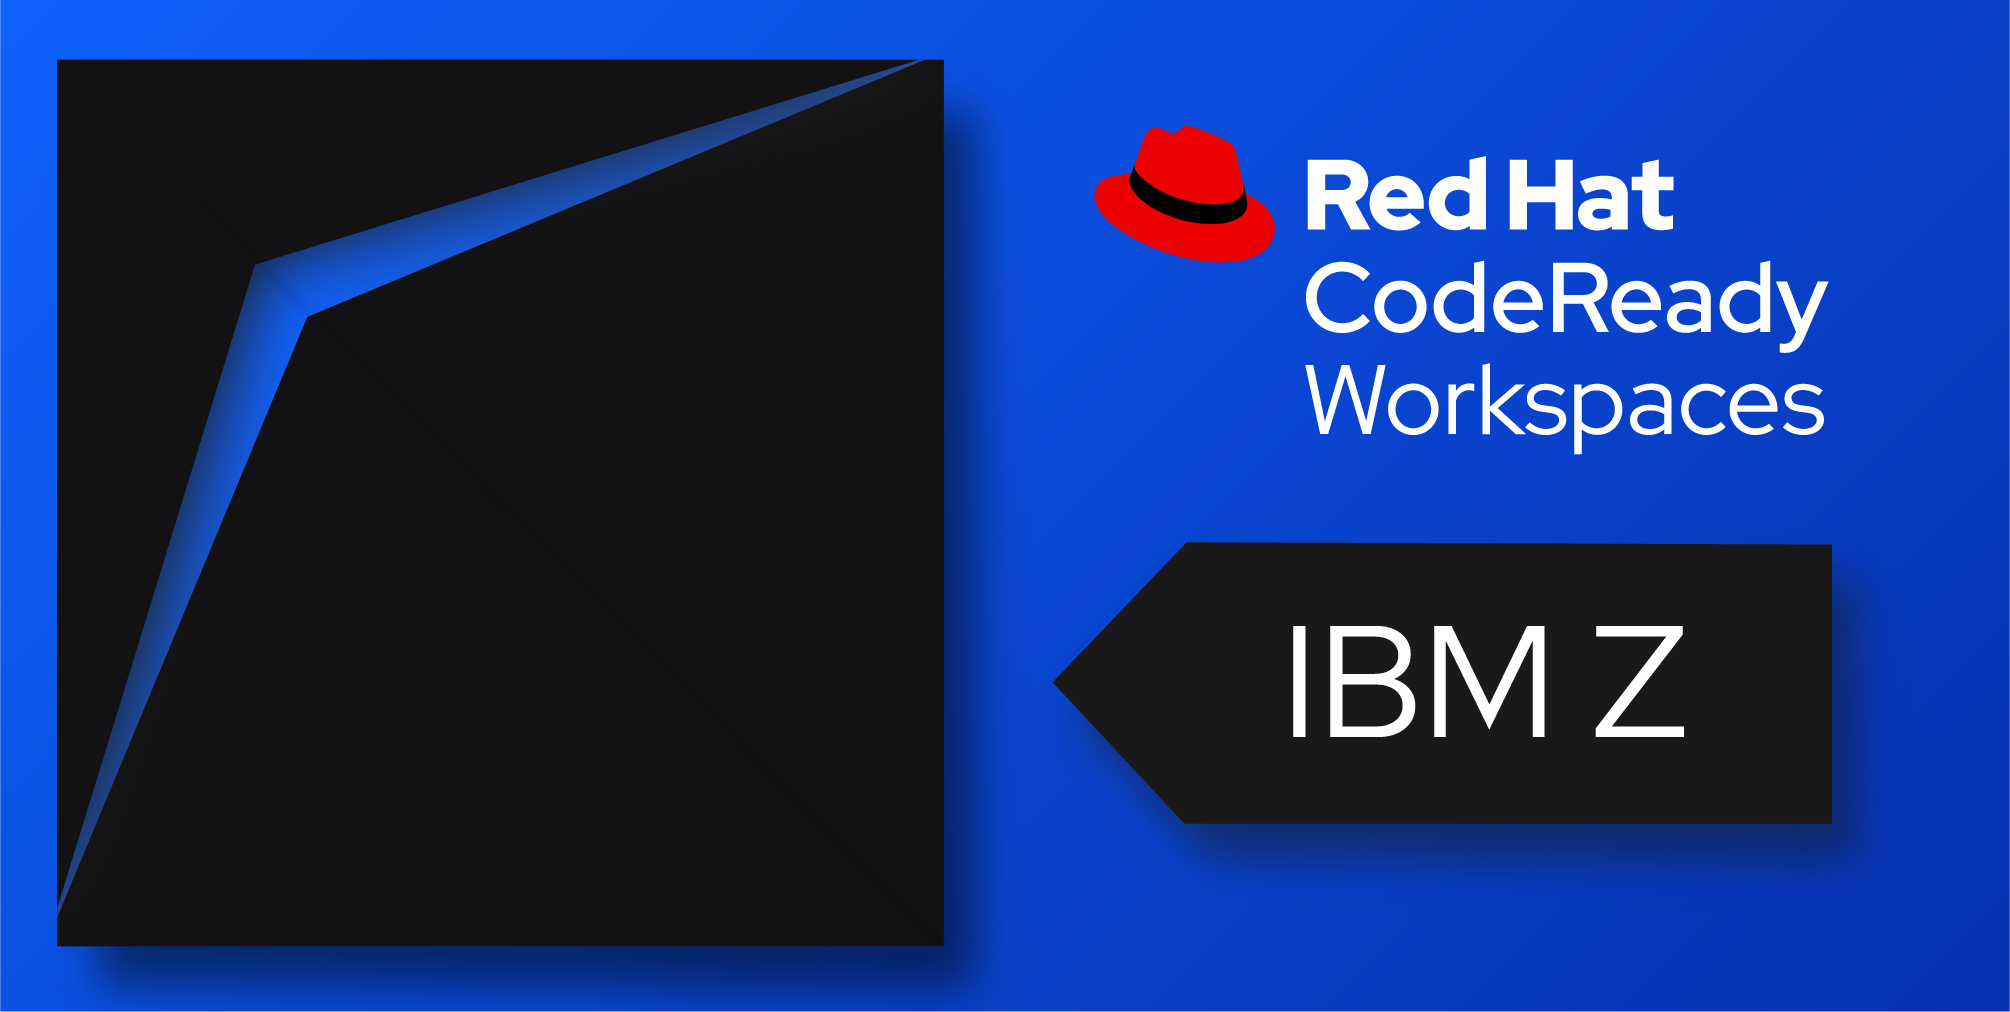 Support for IBM Z and more in CodeReady Workspaces 2.4